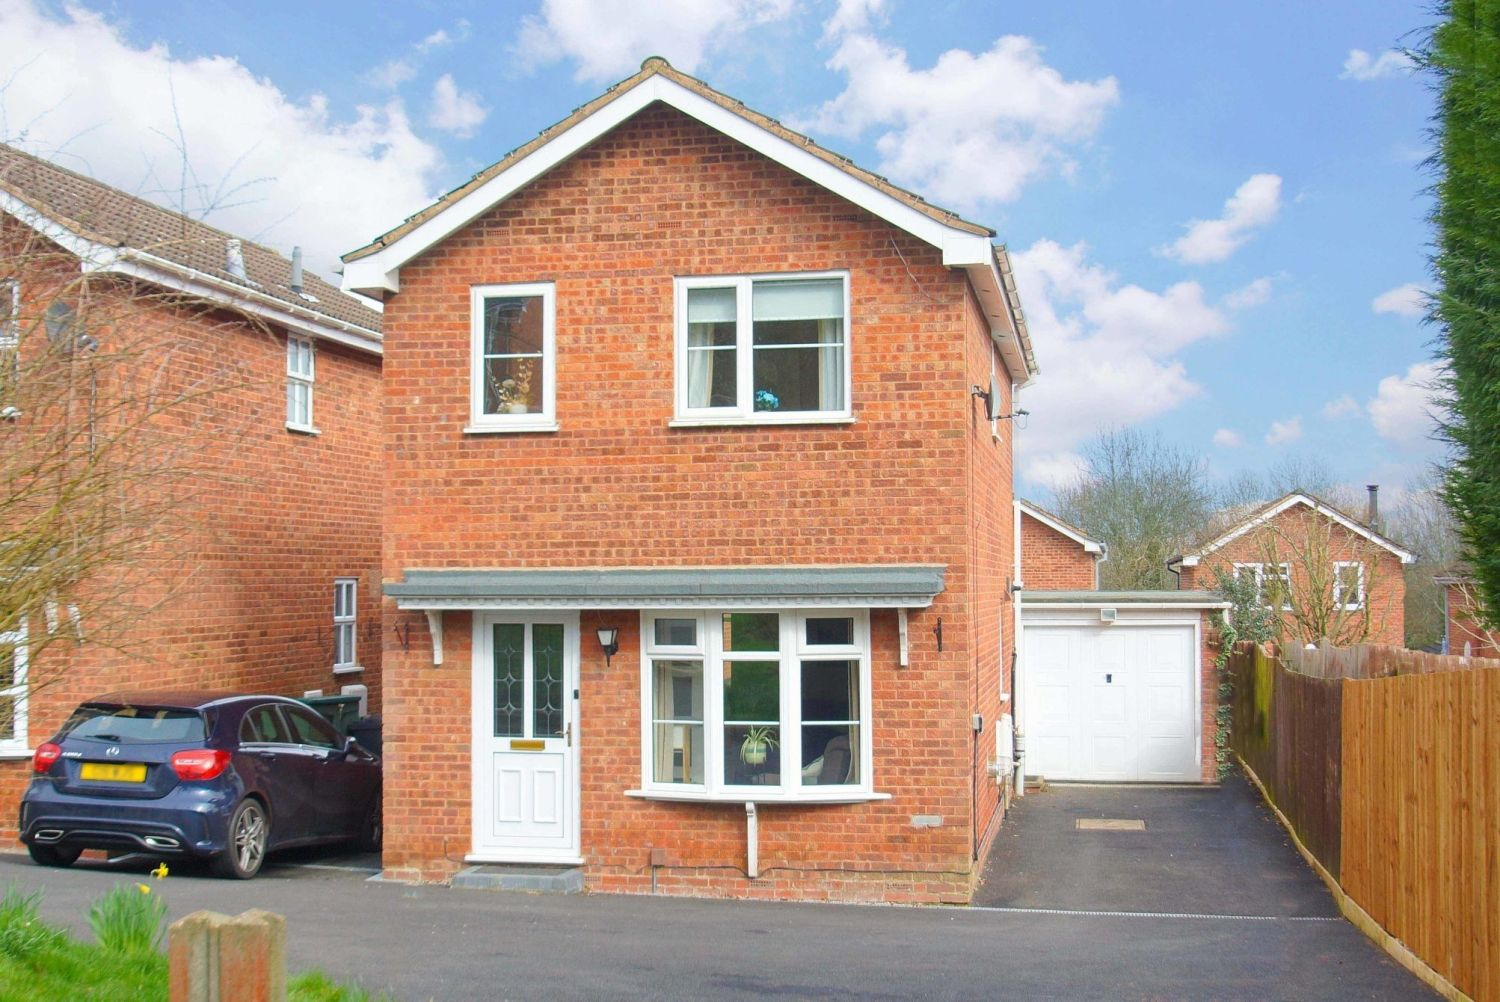 3 bed detached for sale in Painswick Close, Oakenshaw 1